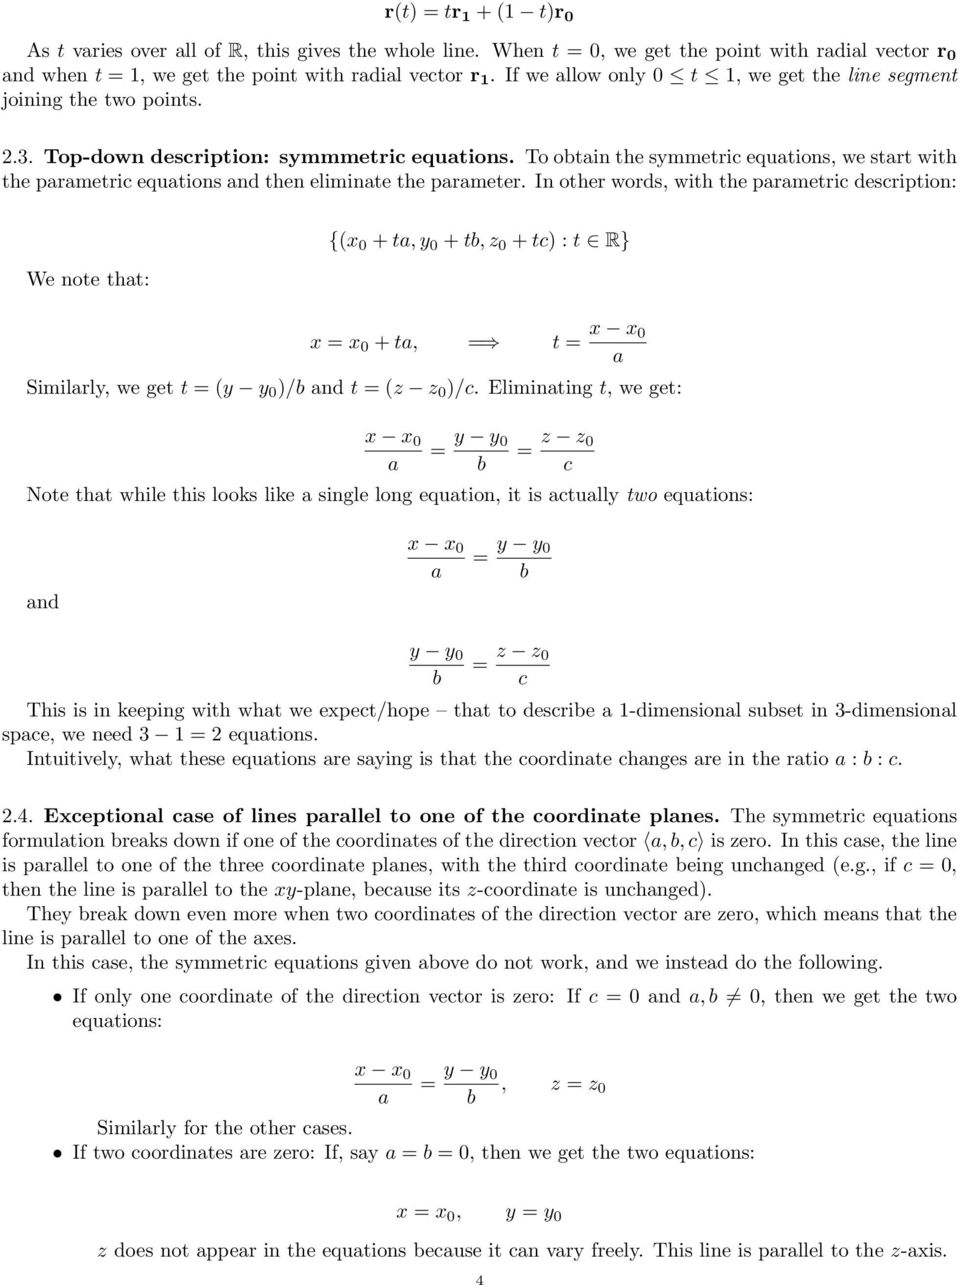 To otin the symmetric equtions, we strt with the prmetric equtions nd then eliminte the prmeter.